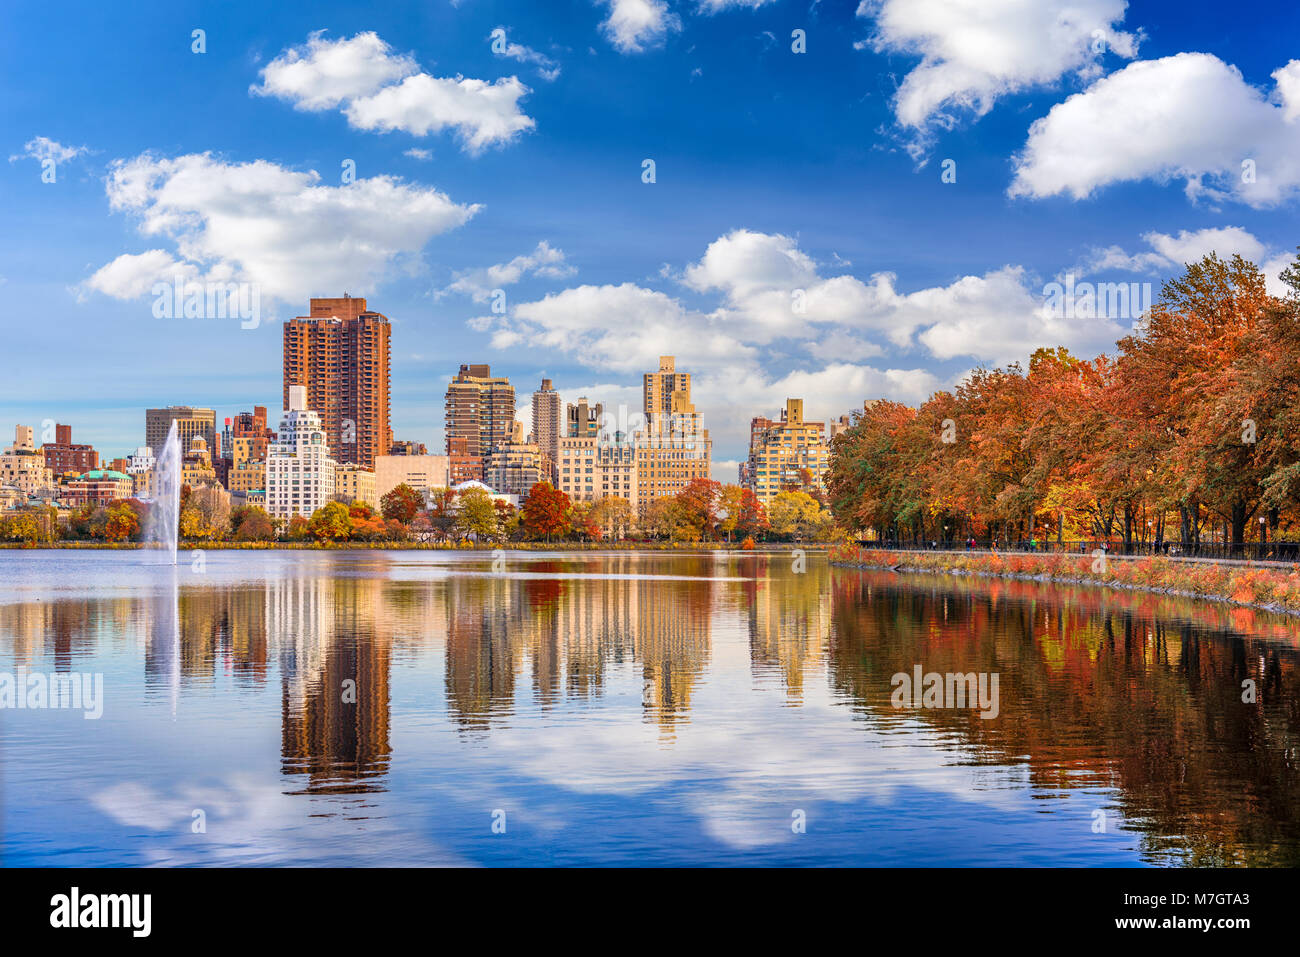 New York, New York at central park in autumn season. - Stock Image